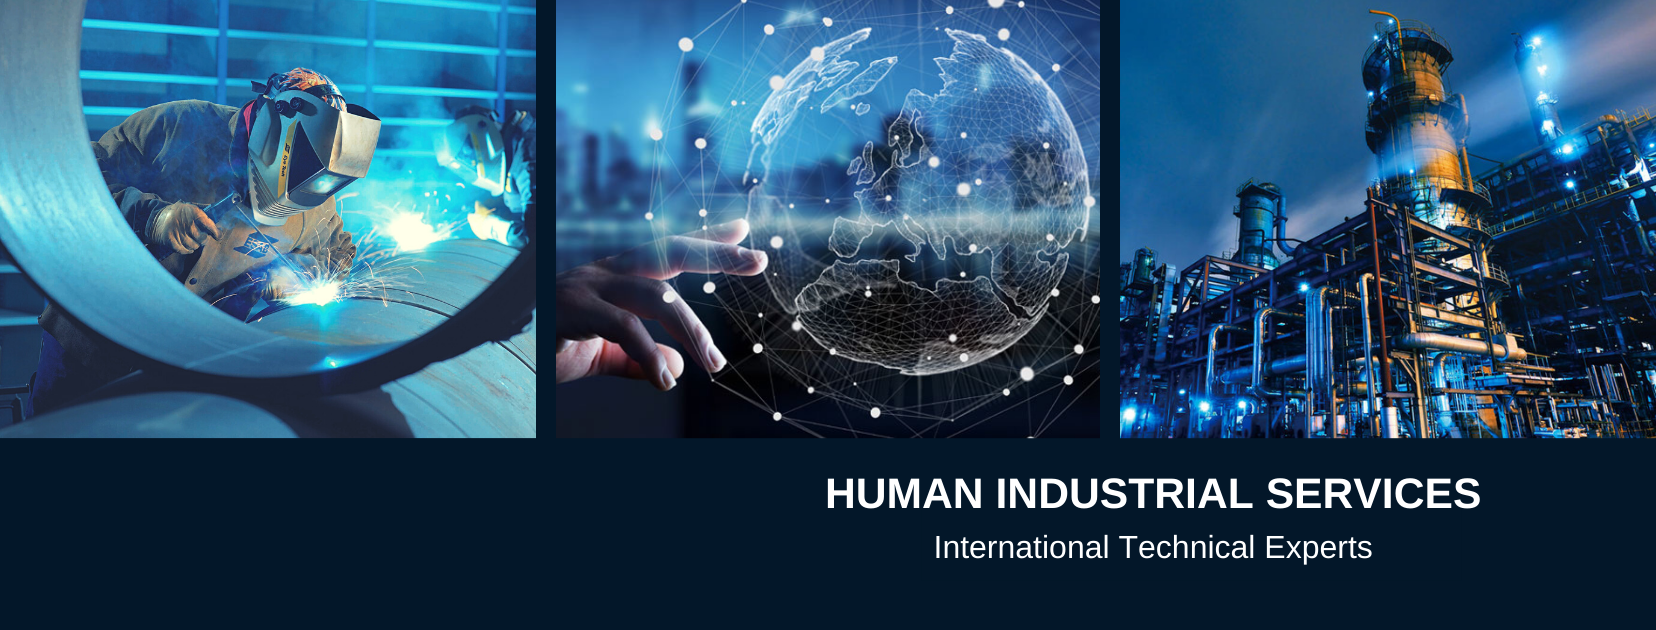 Human Industrial Services Logo ITE